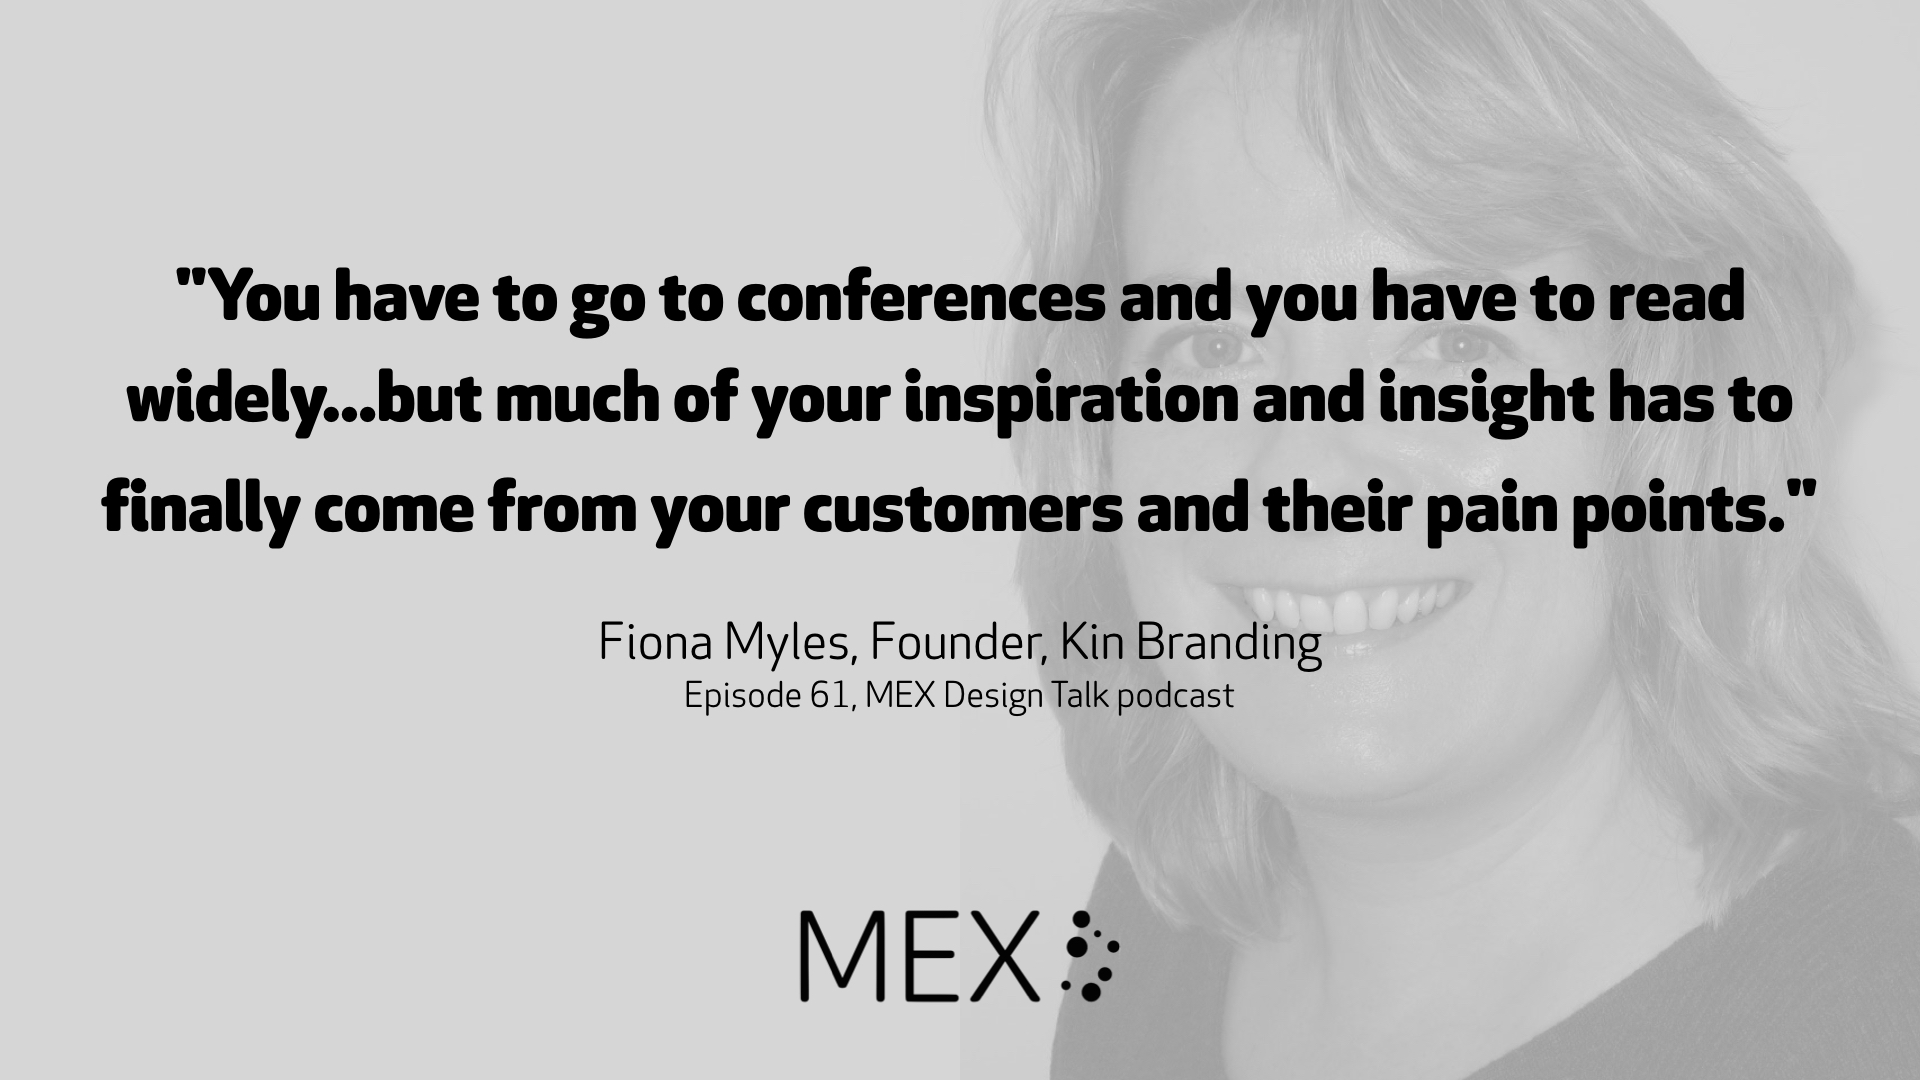 """You have to go to conferences and you have to read widely...but much of your inspiration and insight has to finally come from your customers and their pain points."" Fiona Myles, Founder, Kin Branding Episode 61, MEX Design Talk podcast"